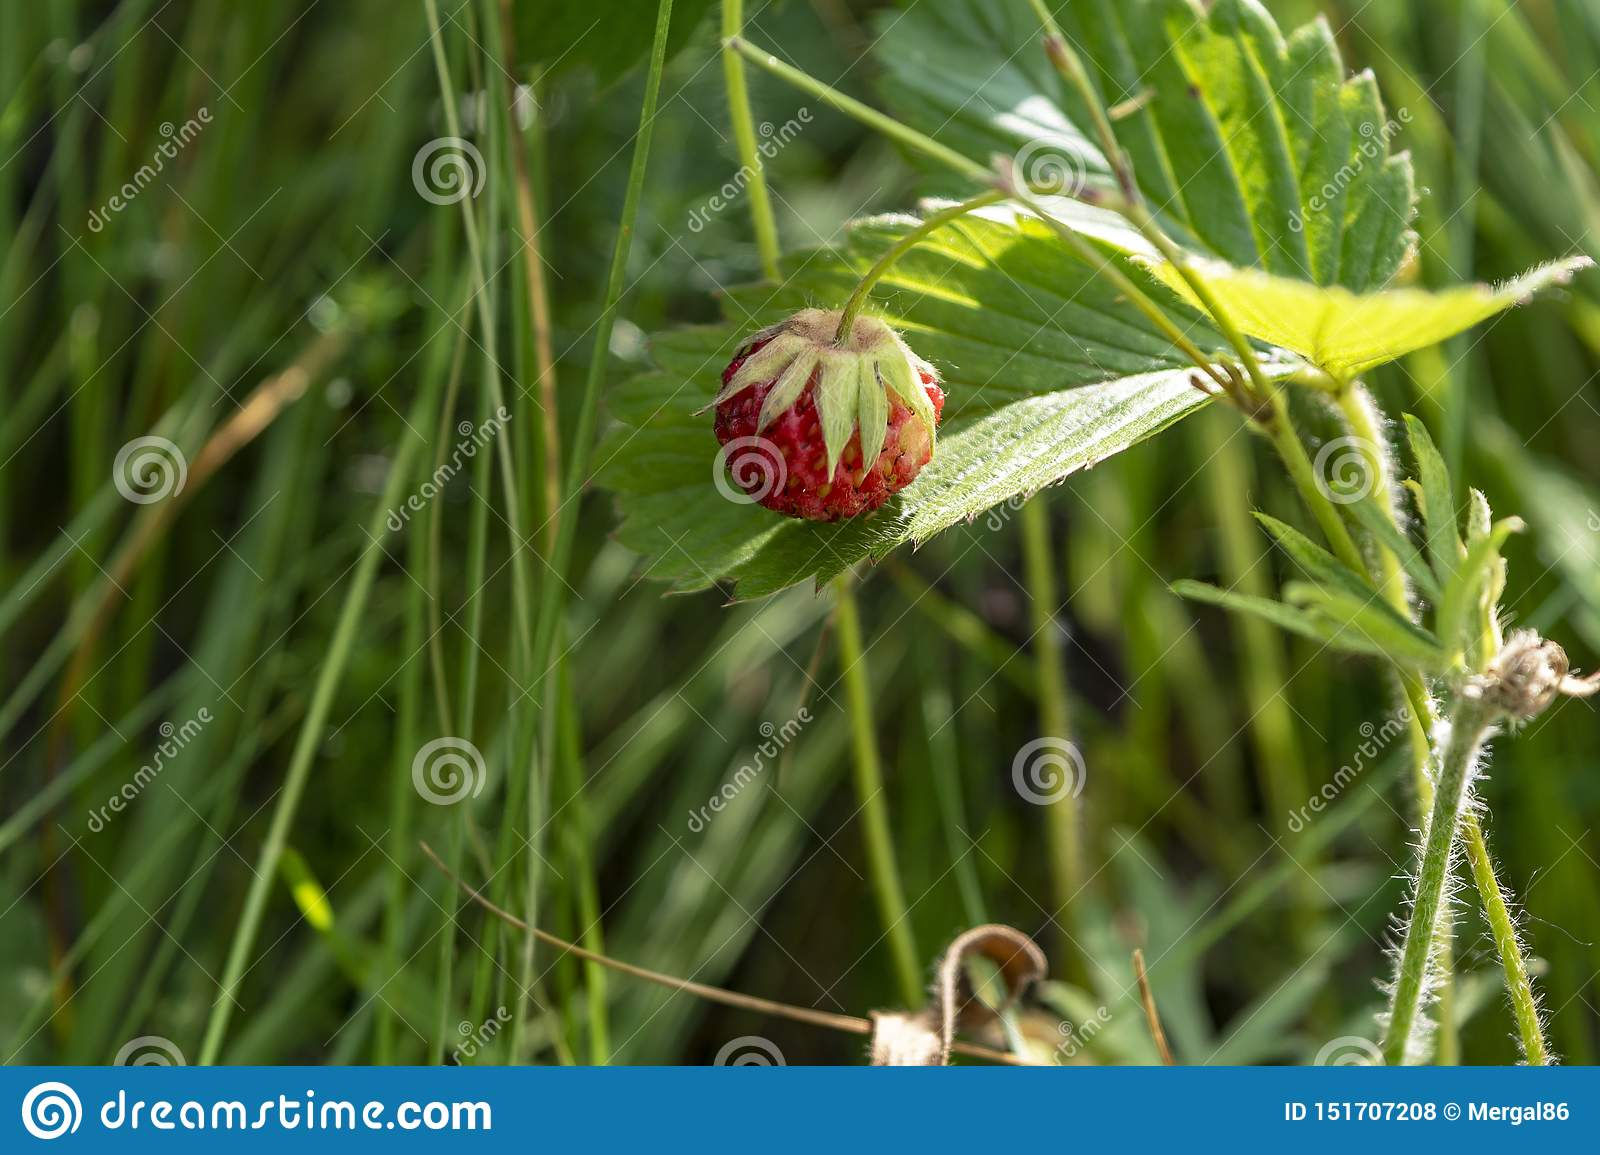 Wild strawberry berry growing in natural environment. Close-up